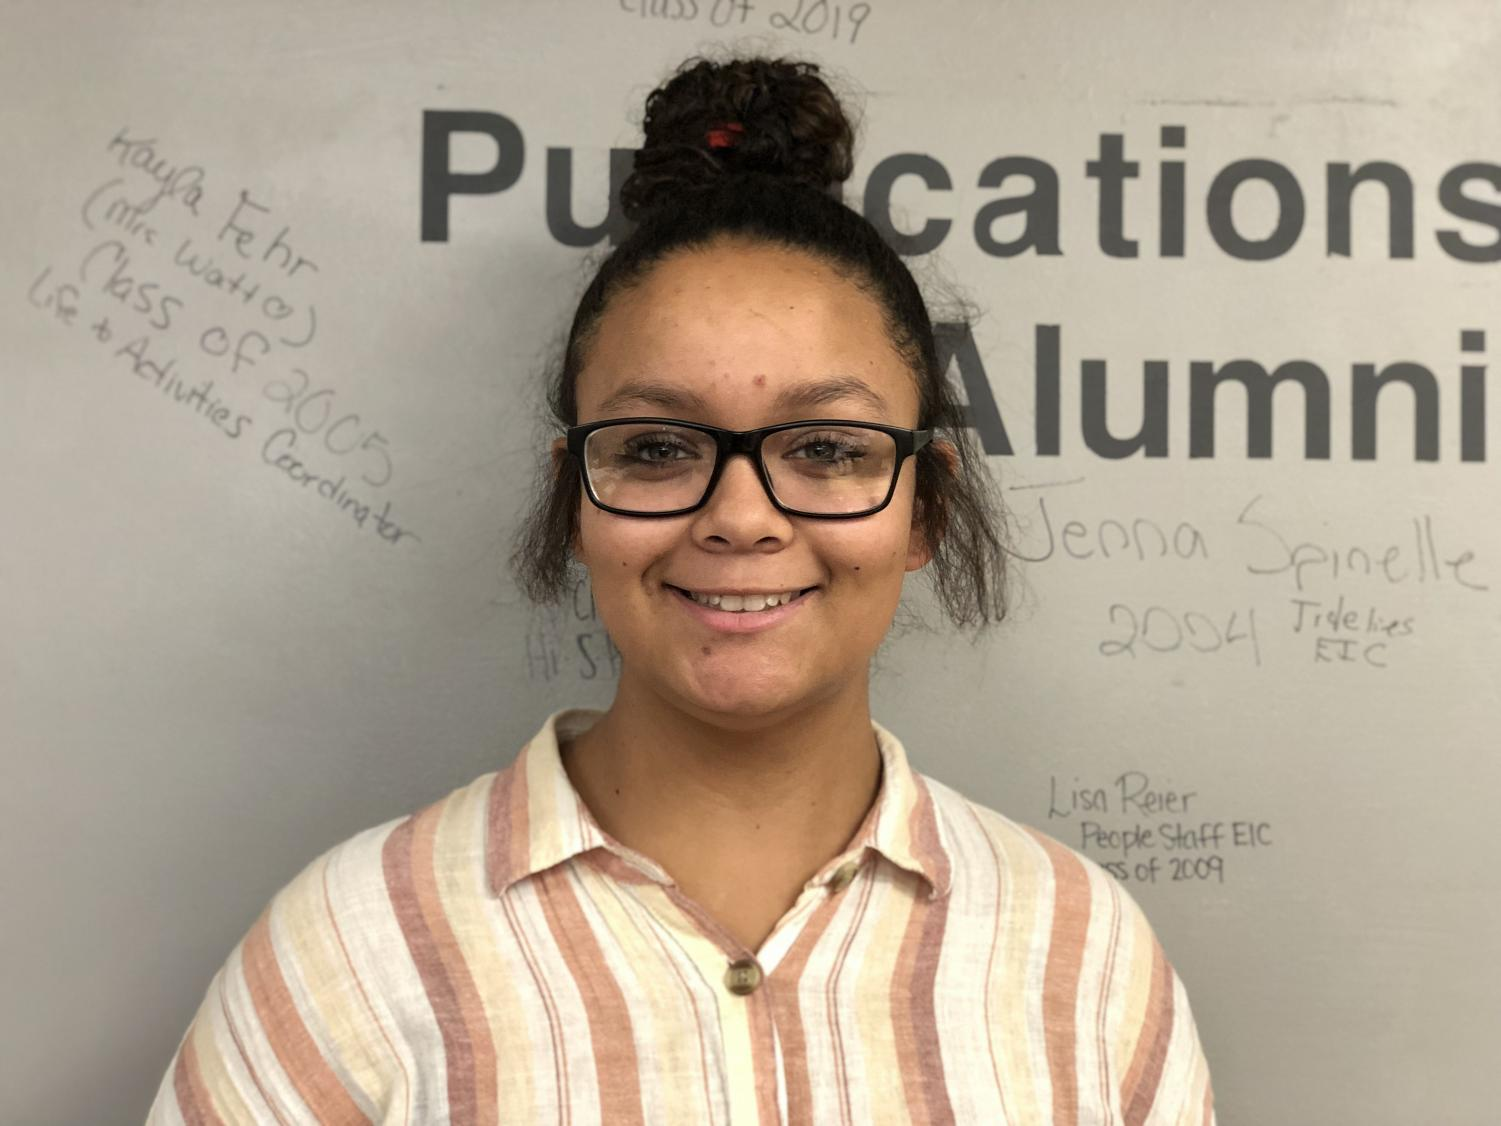 Freshman Tayla Jones has been playing both basketball and softball since elementary school. In addition to participating in these two sports during her freshman year at PAHS, Jones is also an extra-curricular member of the Publications team.